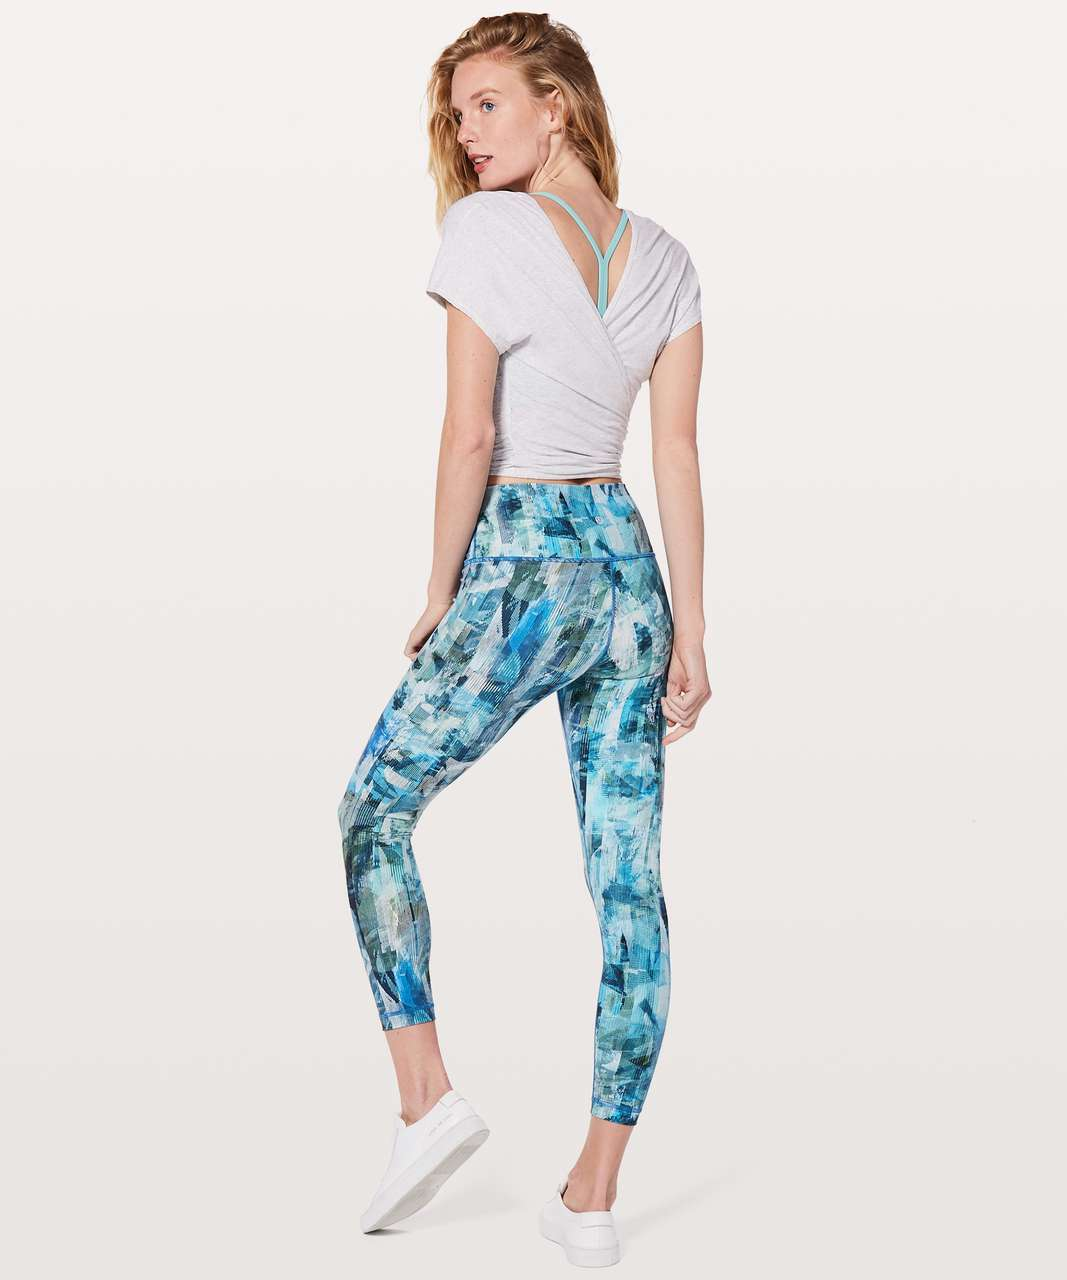 "Lululemon Wunder Under Hi-Rise 7/8 Tight 25"" - Sun Dazed Multi Blue"